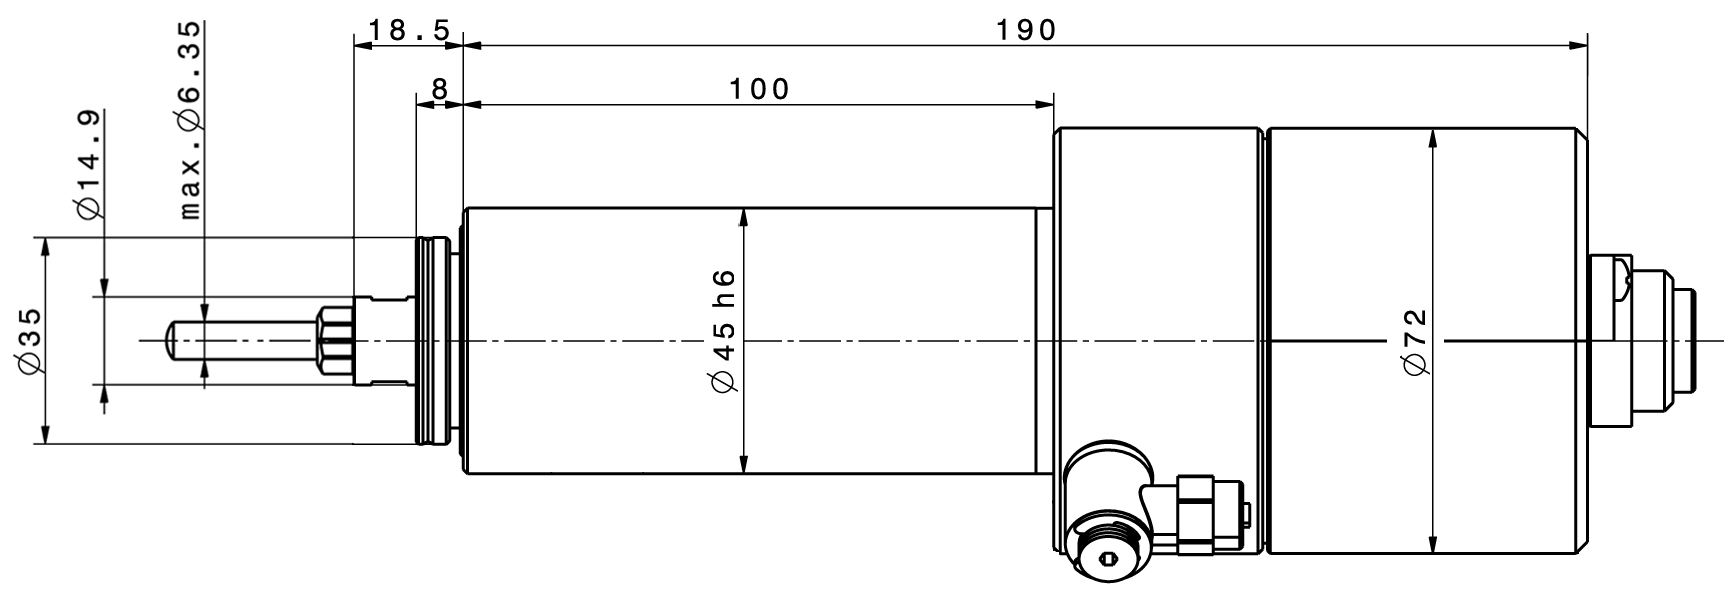 Type 4040 dimensions